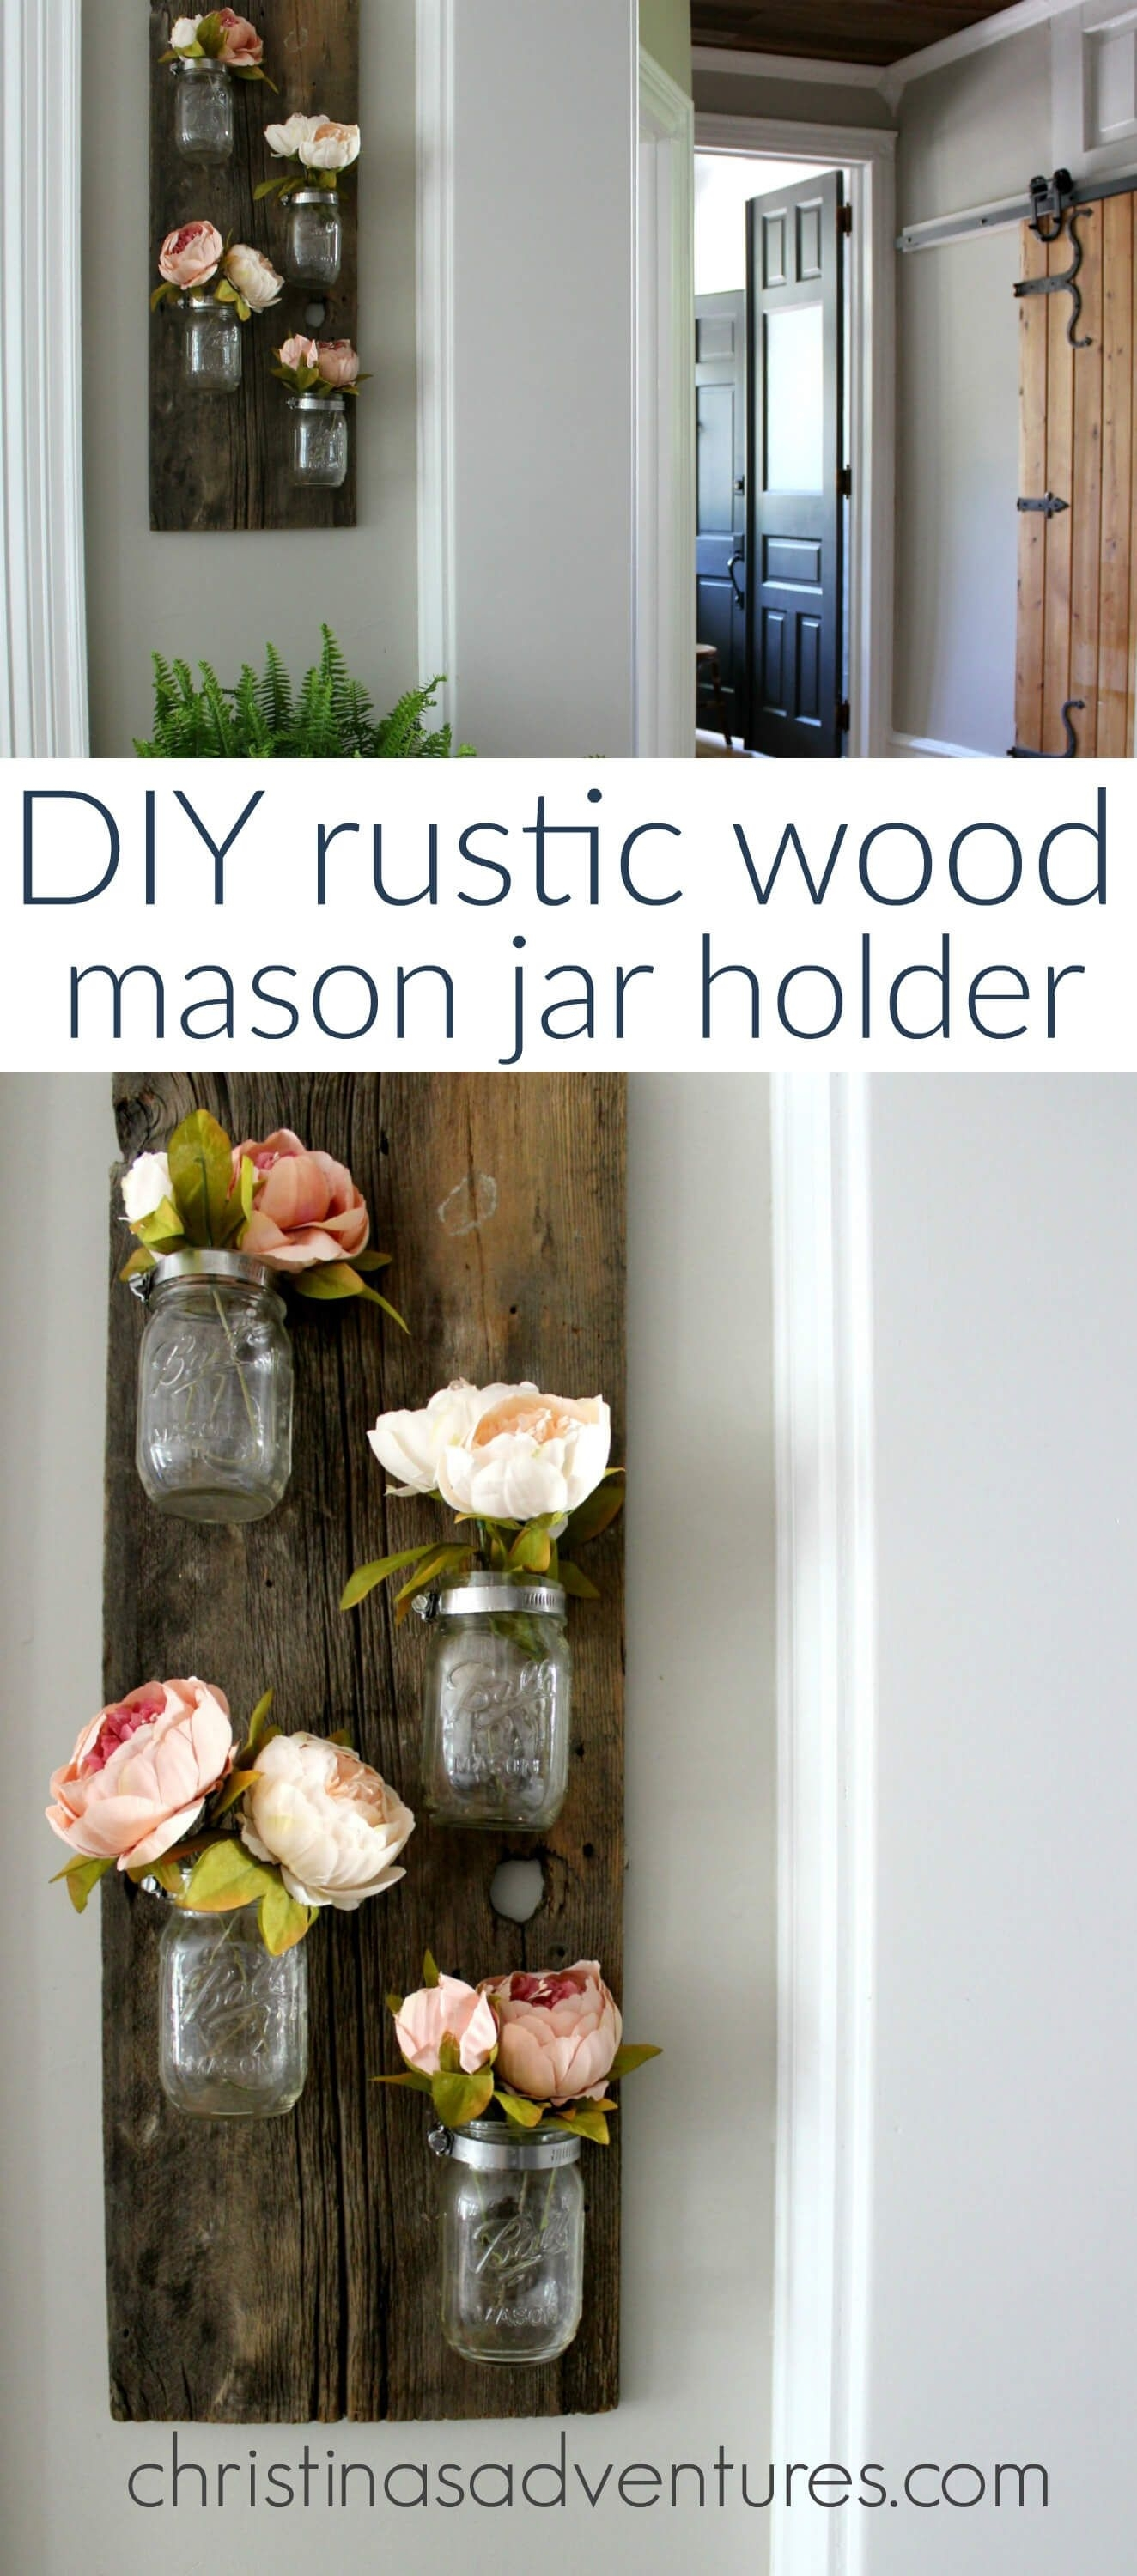 24 Enchanting Mason Jar Wall Decor Ideas To Brighten Your Walls Within Most Current Mason Jar Wall Art (View 3 of 20)